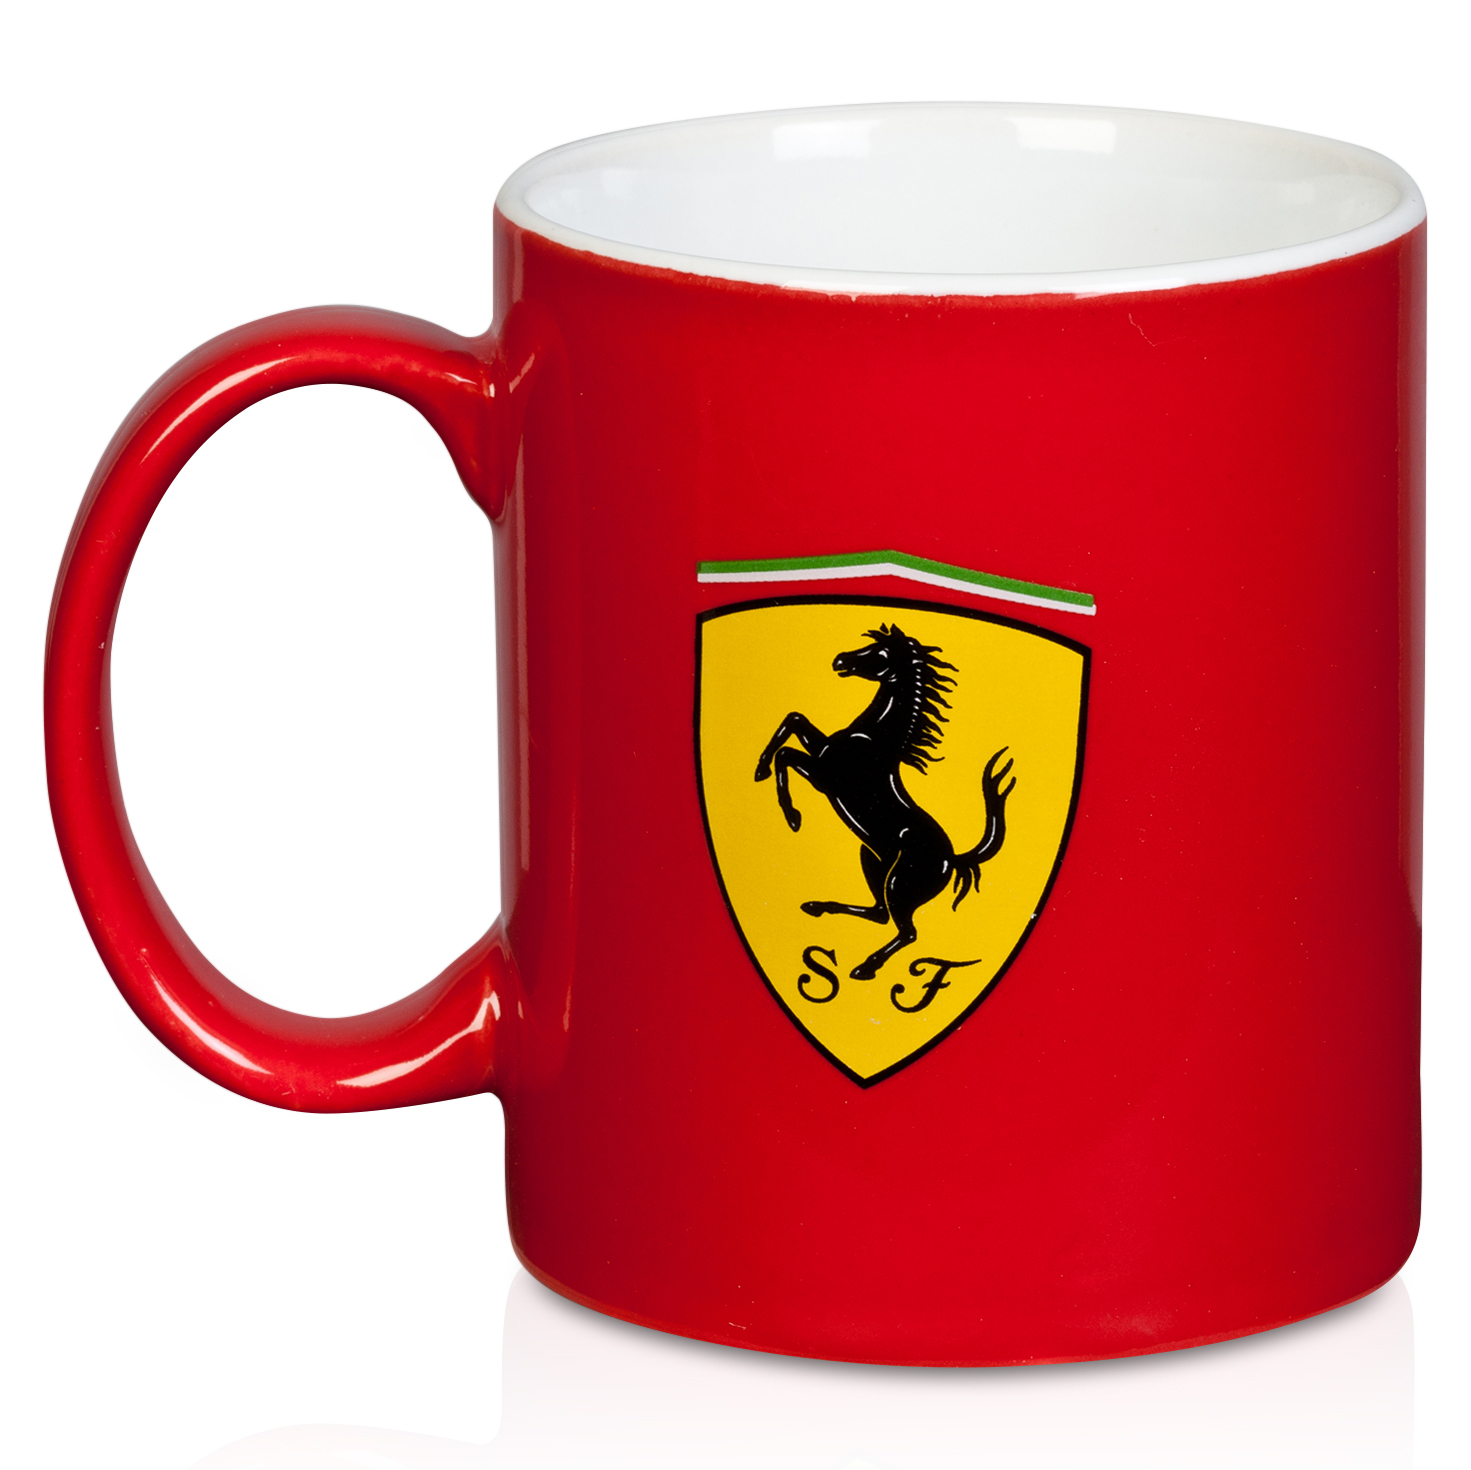 Scuderia Ferrari Ceramic Mug - Red